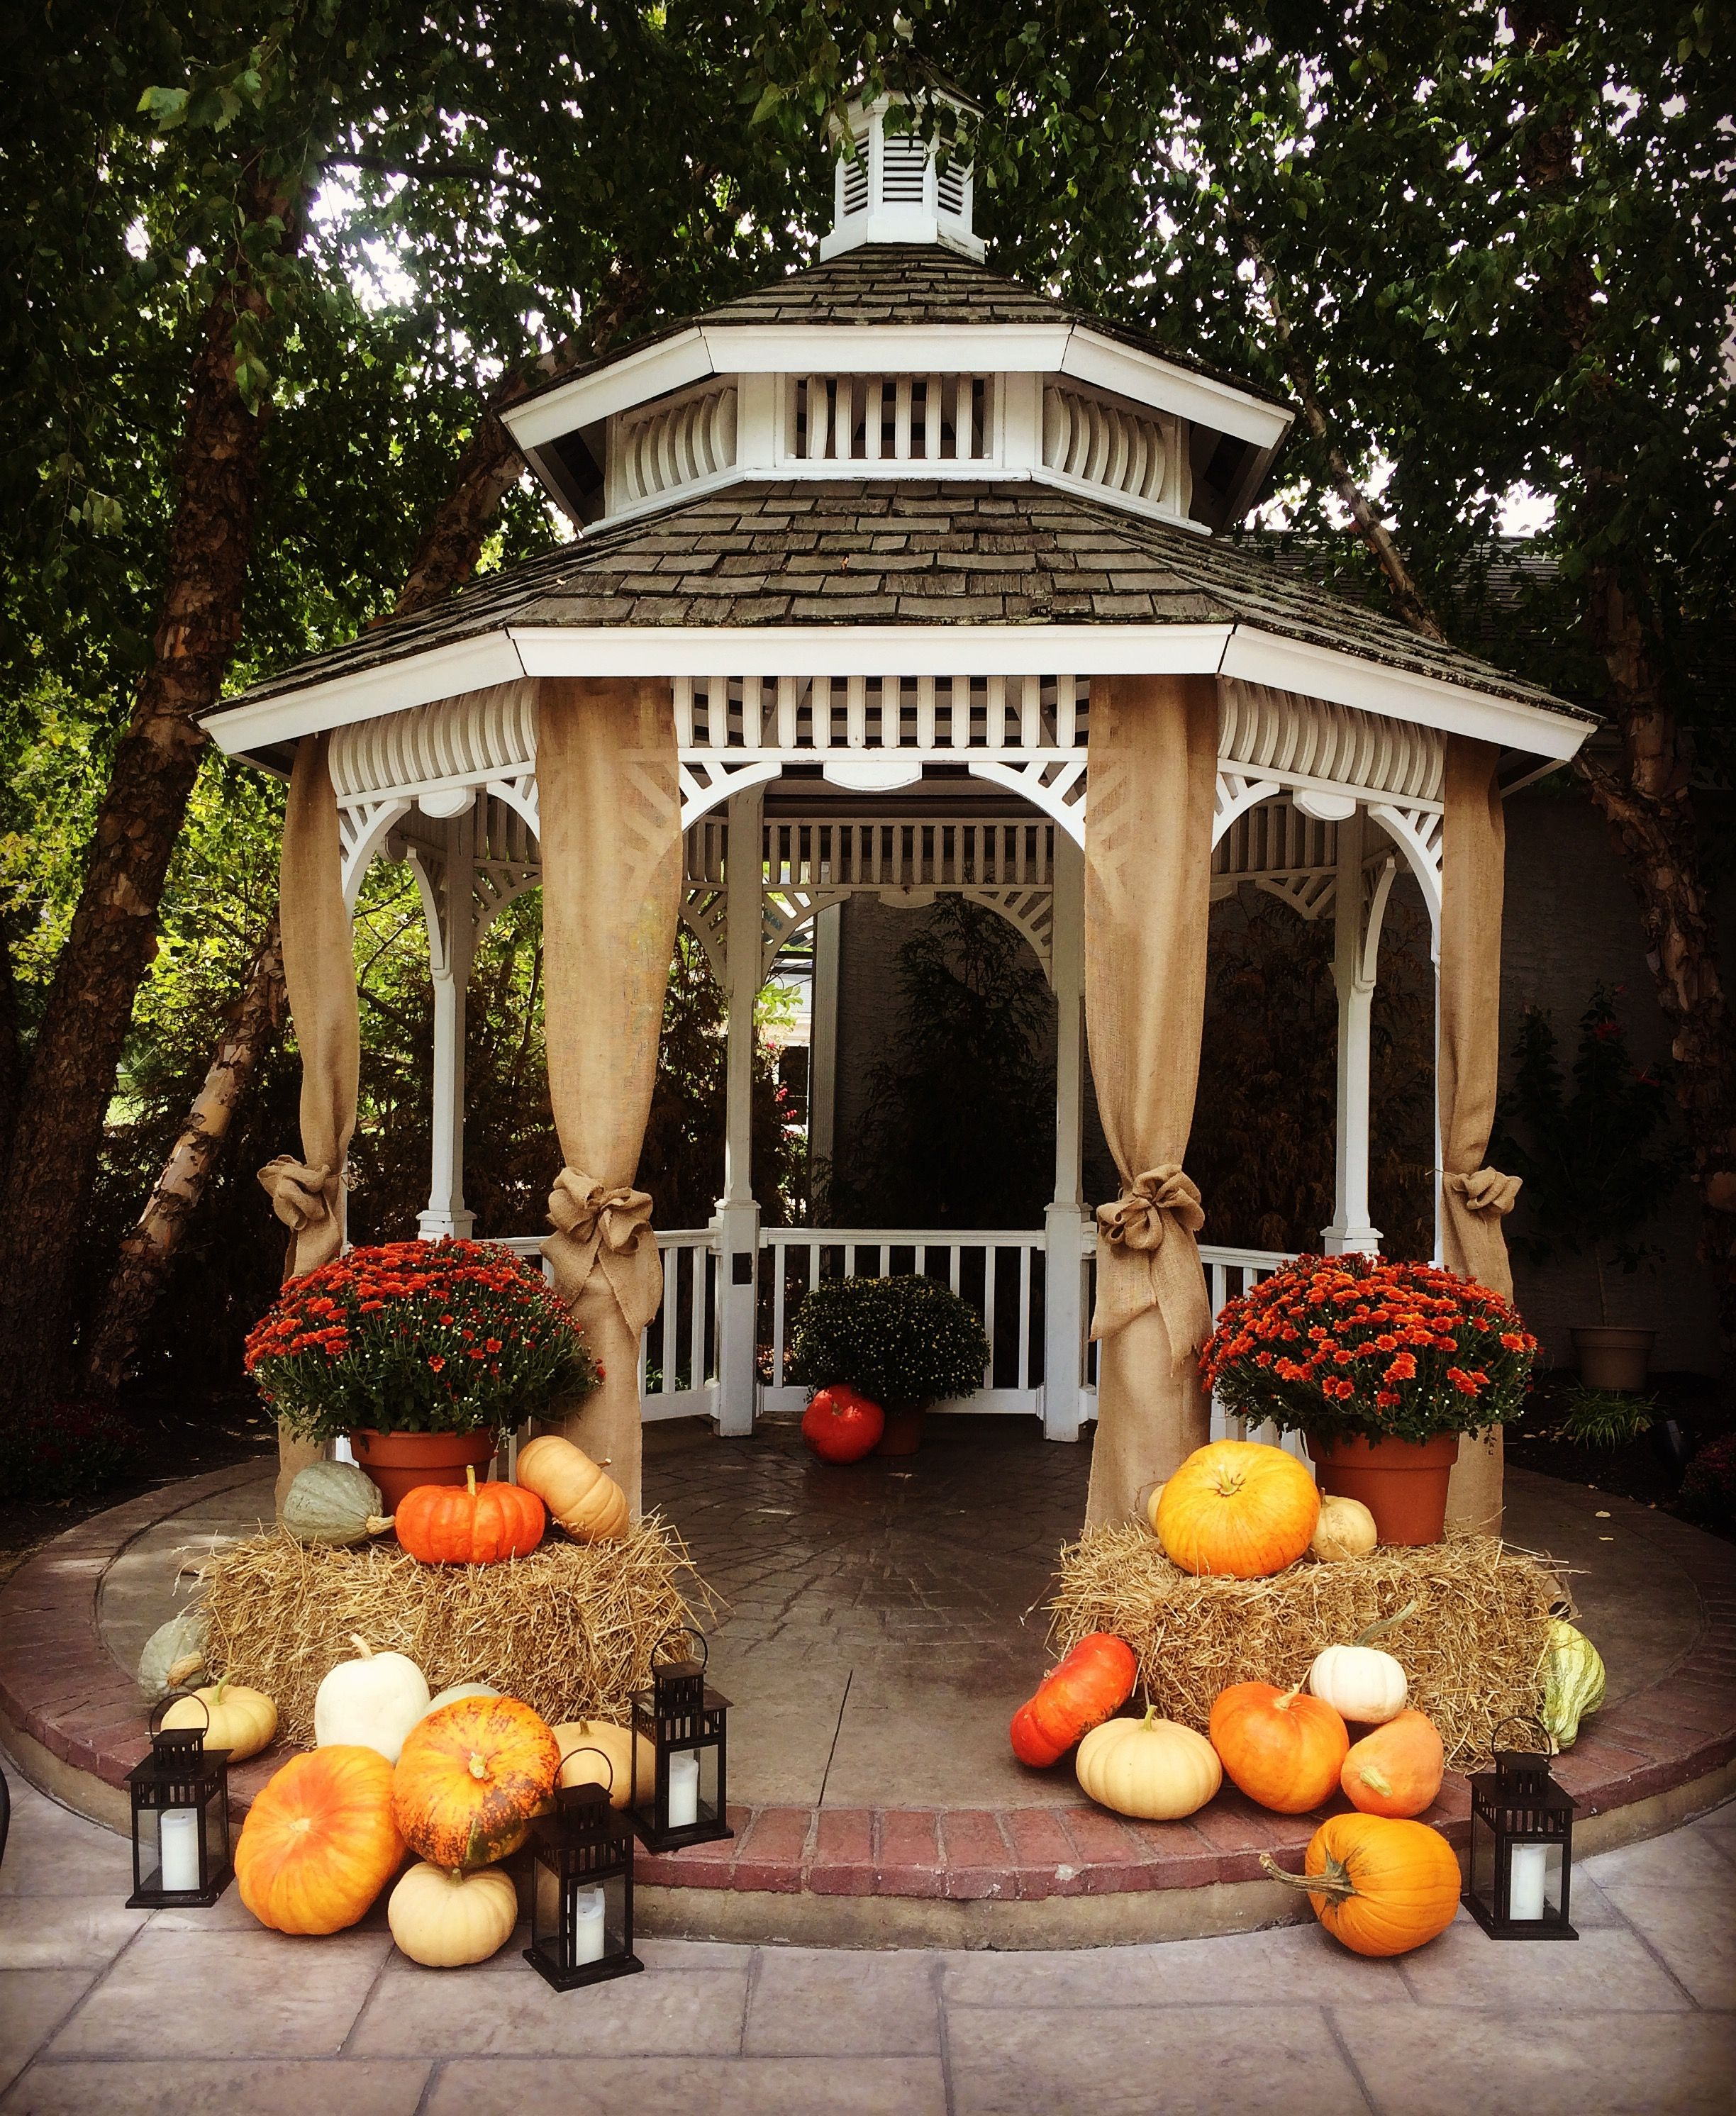 Fall Decor For A Outdoor Wedding Ceremony. Hay, Lanterns